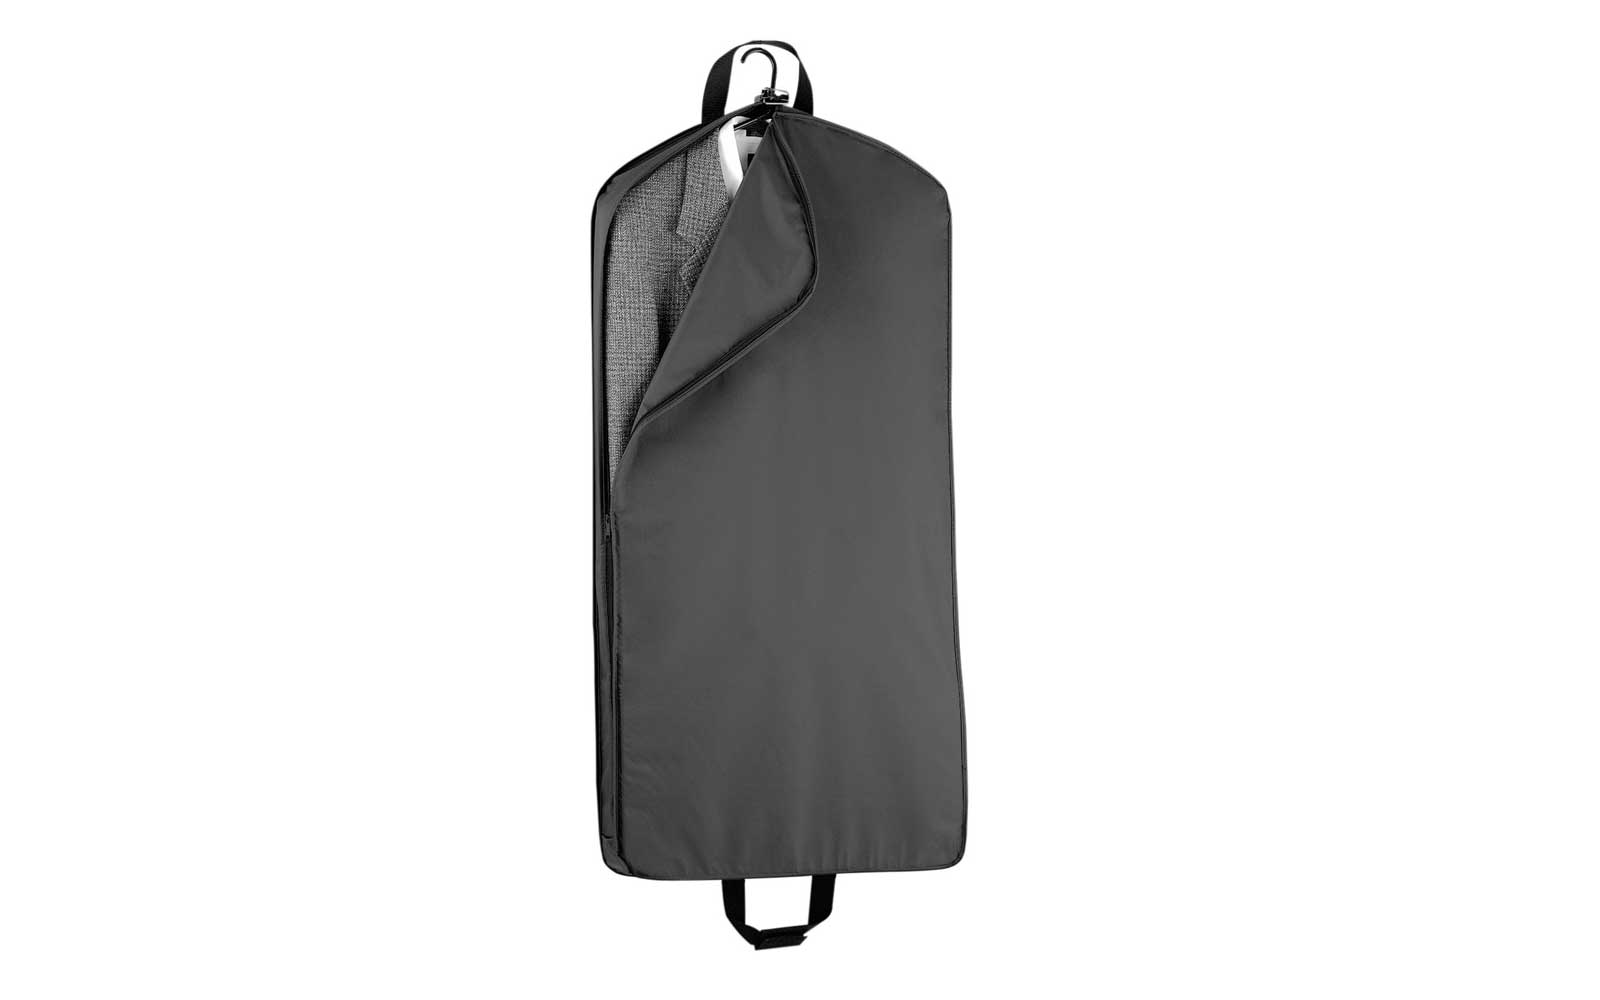 42b53347566d The Best Garment Bags for Travel